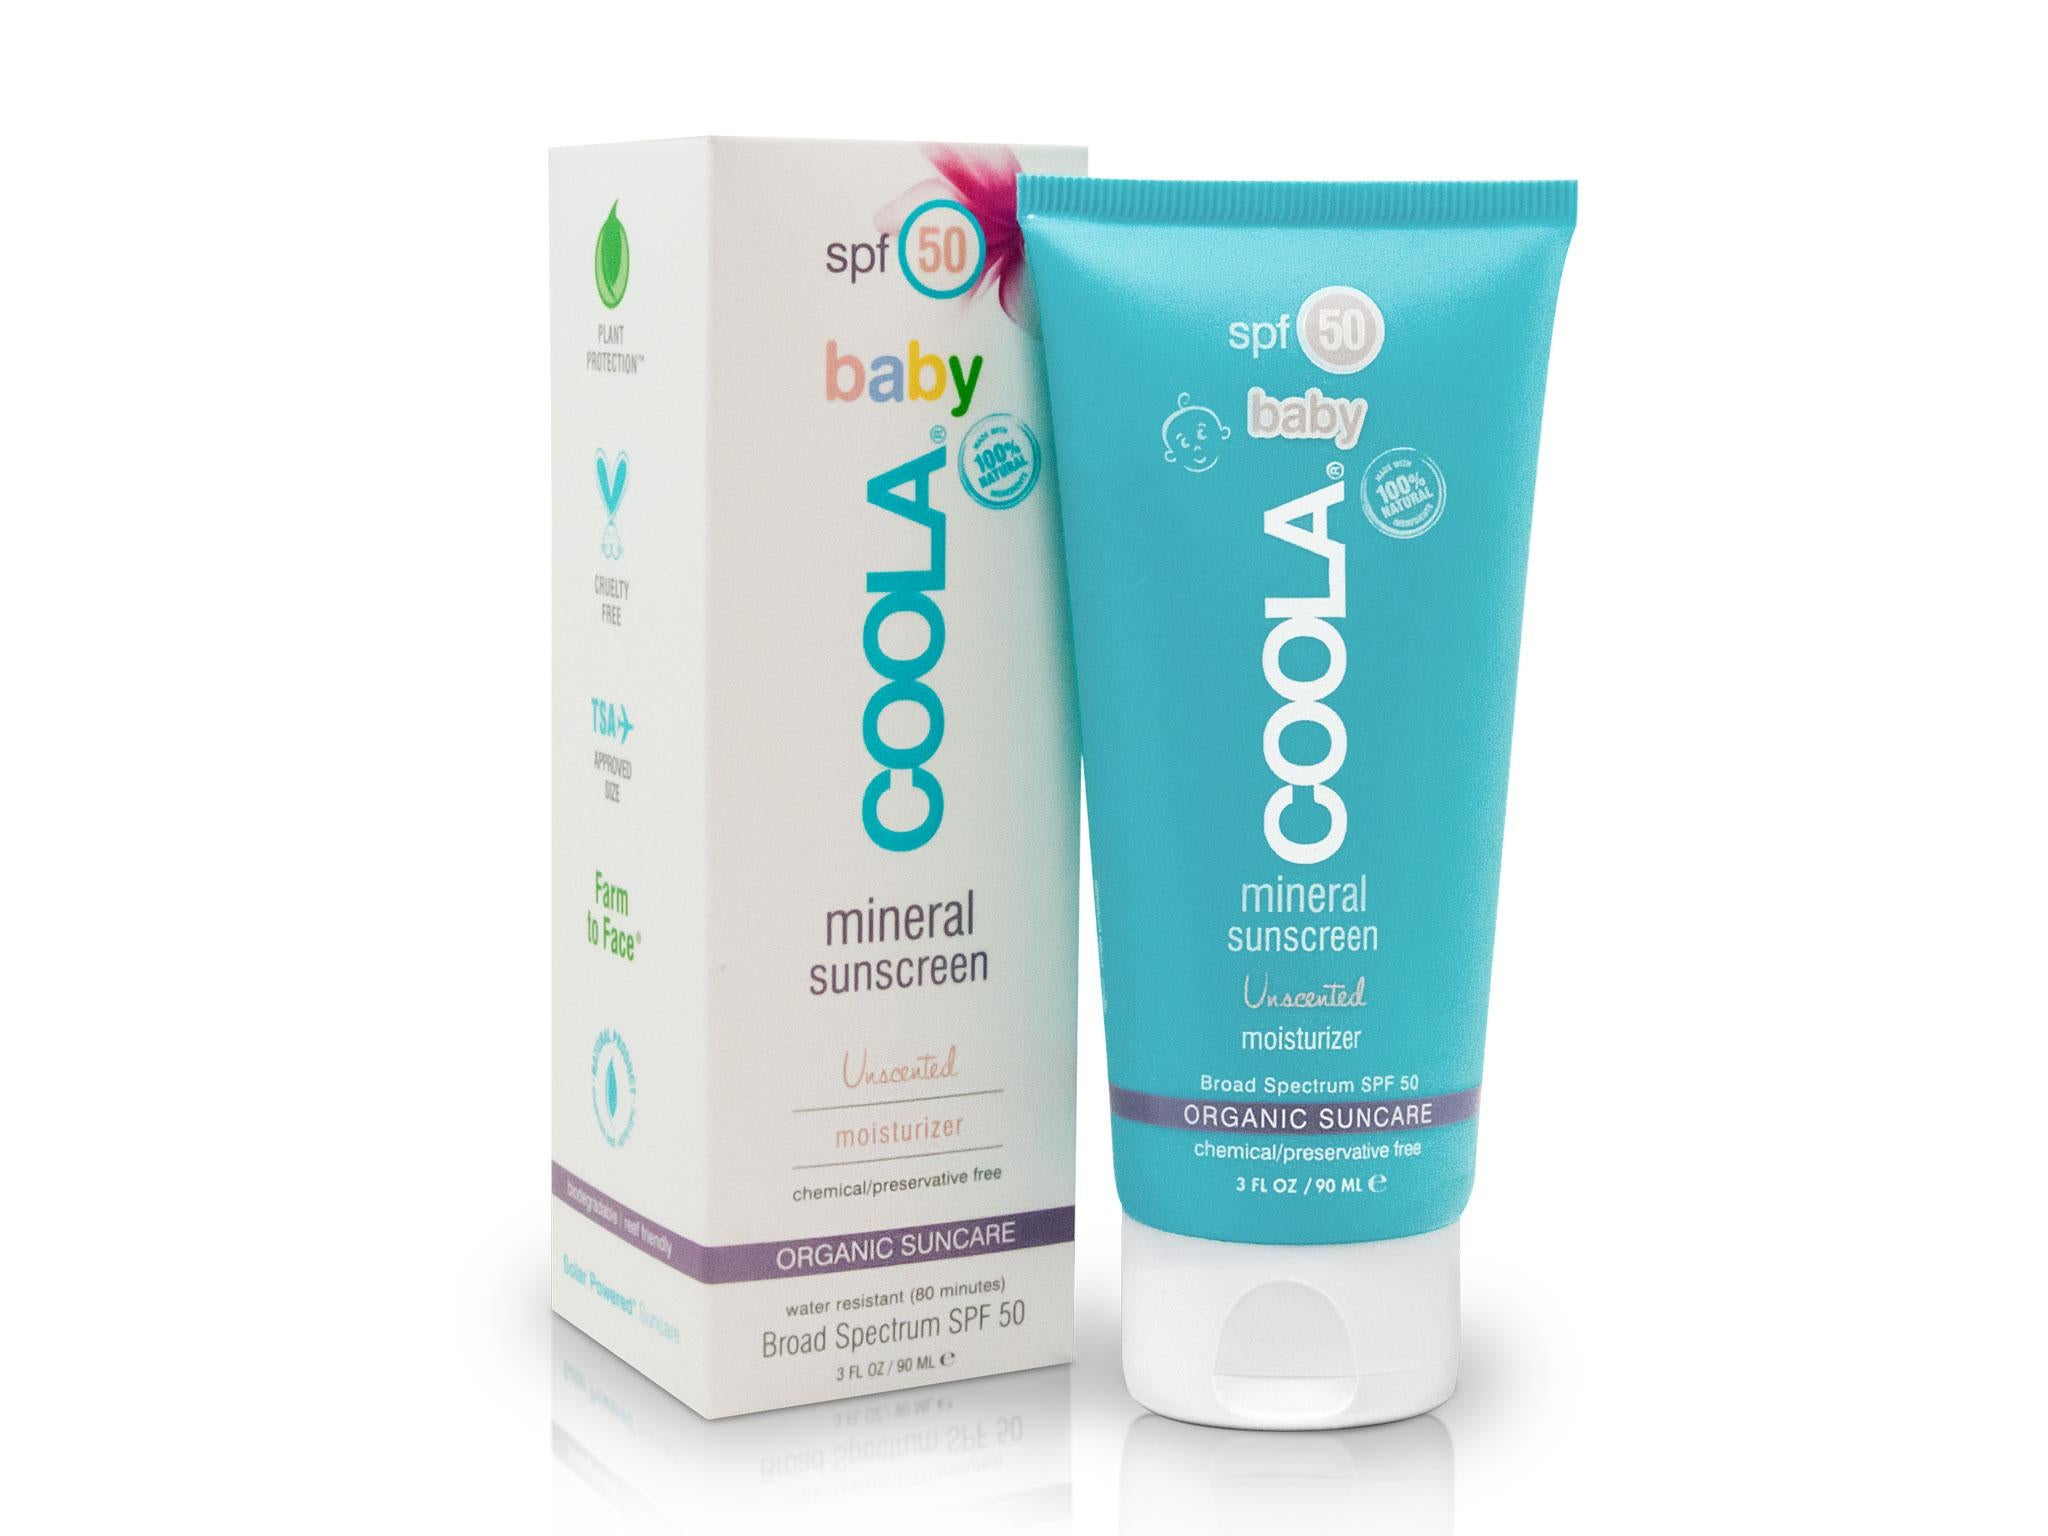 10 Best Sunscreens For Babies The Independent Sunblock Banana Boat Spf50 60ml Coola Organic Baby Mineral Sunscreen 30 90ml Marks And Spencer